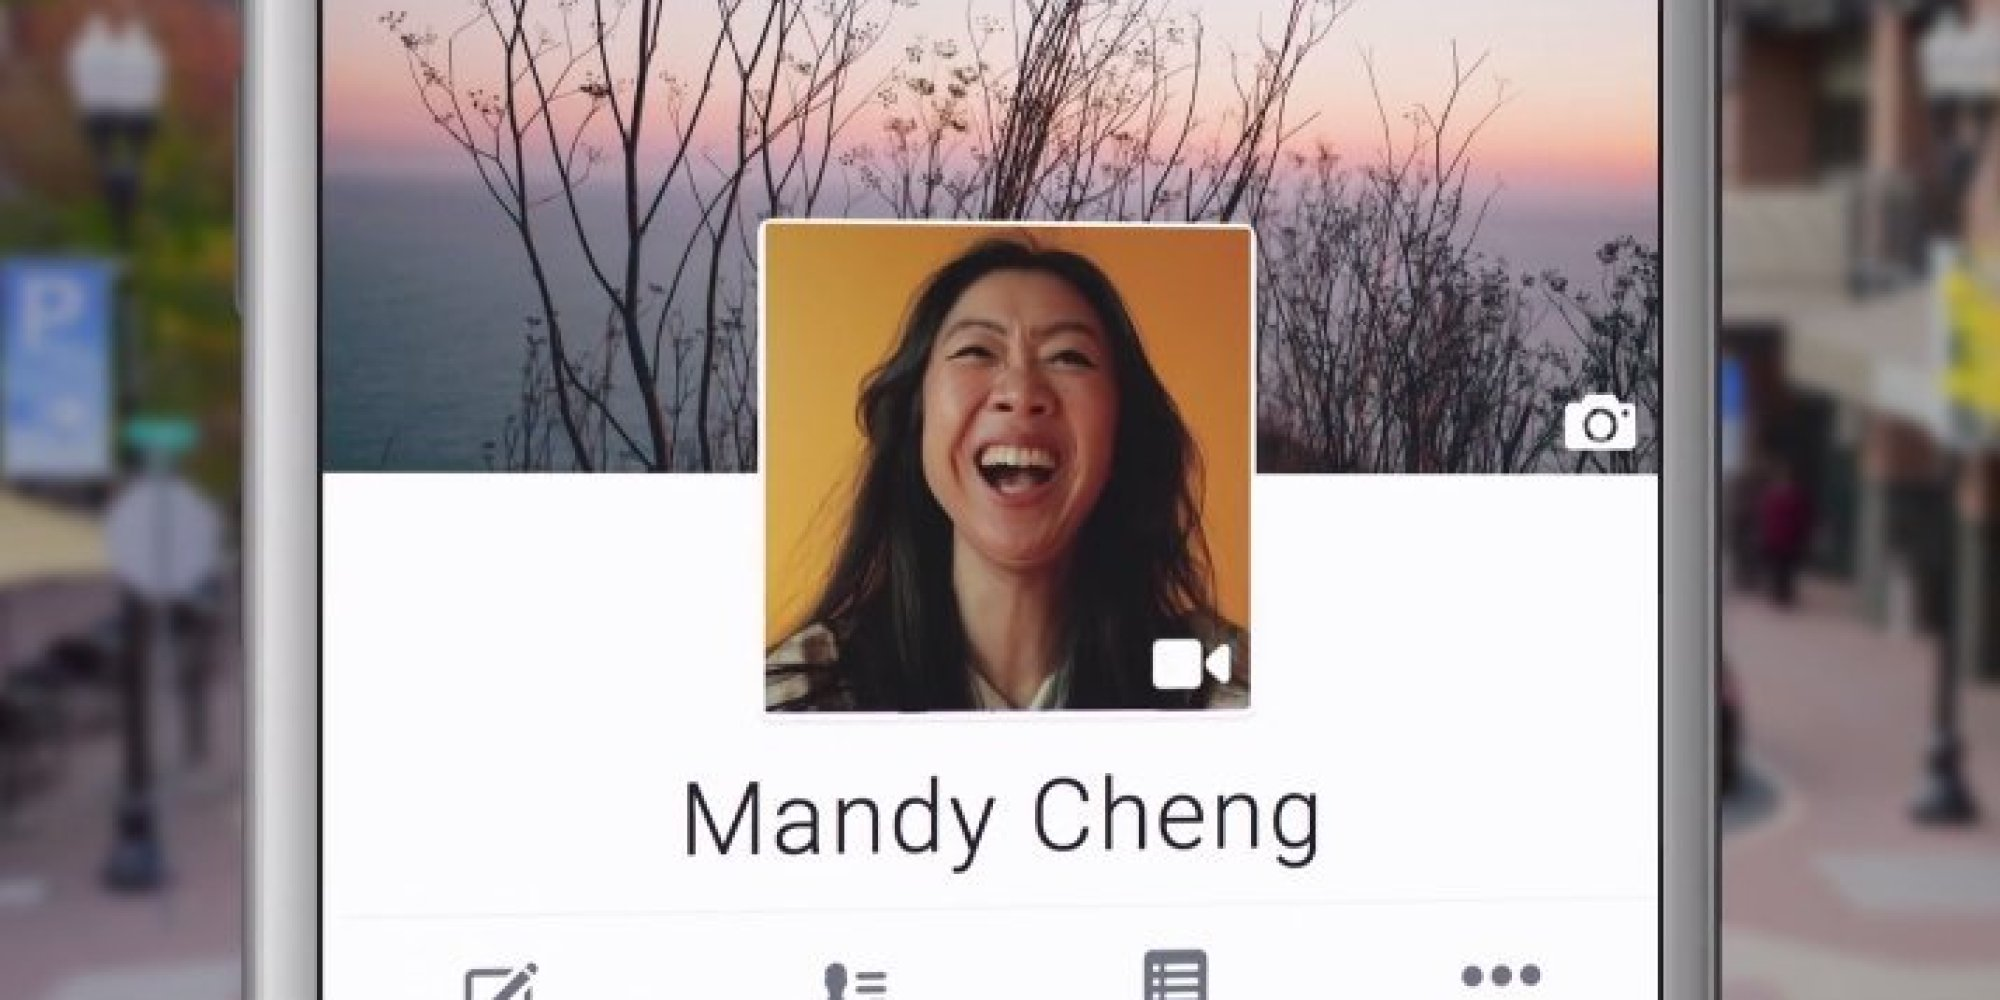 facebook 39 s new profile pages will allow profile videos cue endless possibilities huffpost uk. Black Bedroom Furniture Sets. Home Design Ideas